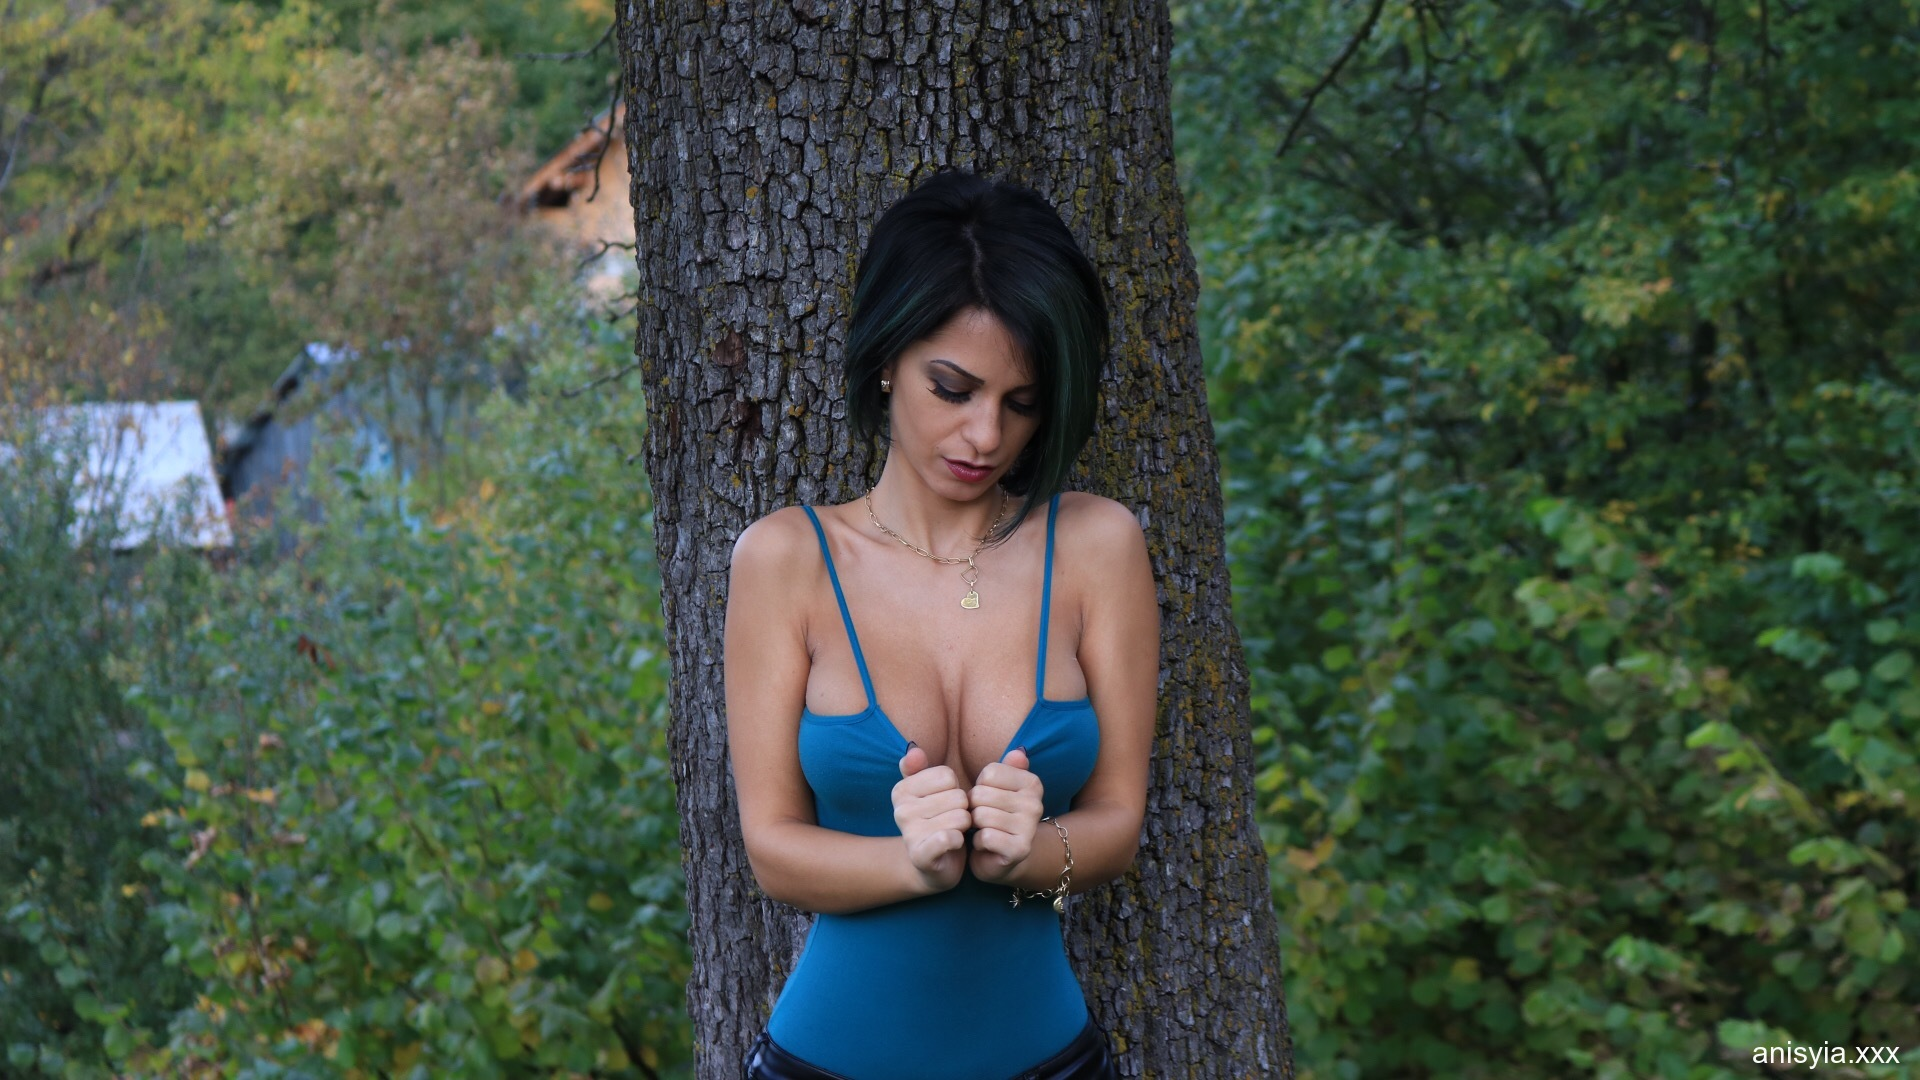 Anisyia Big Tits Tight Leather Trousers in the Forest